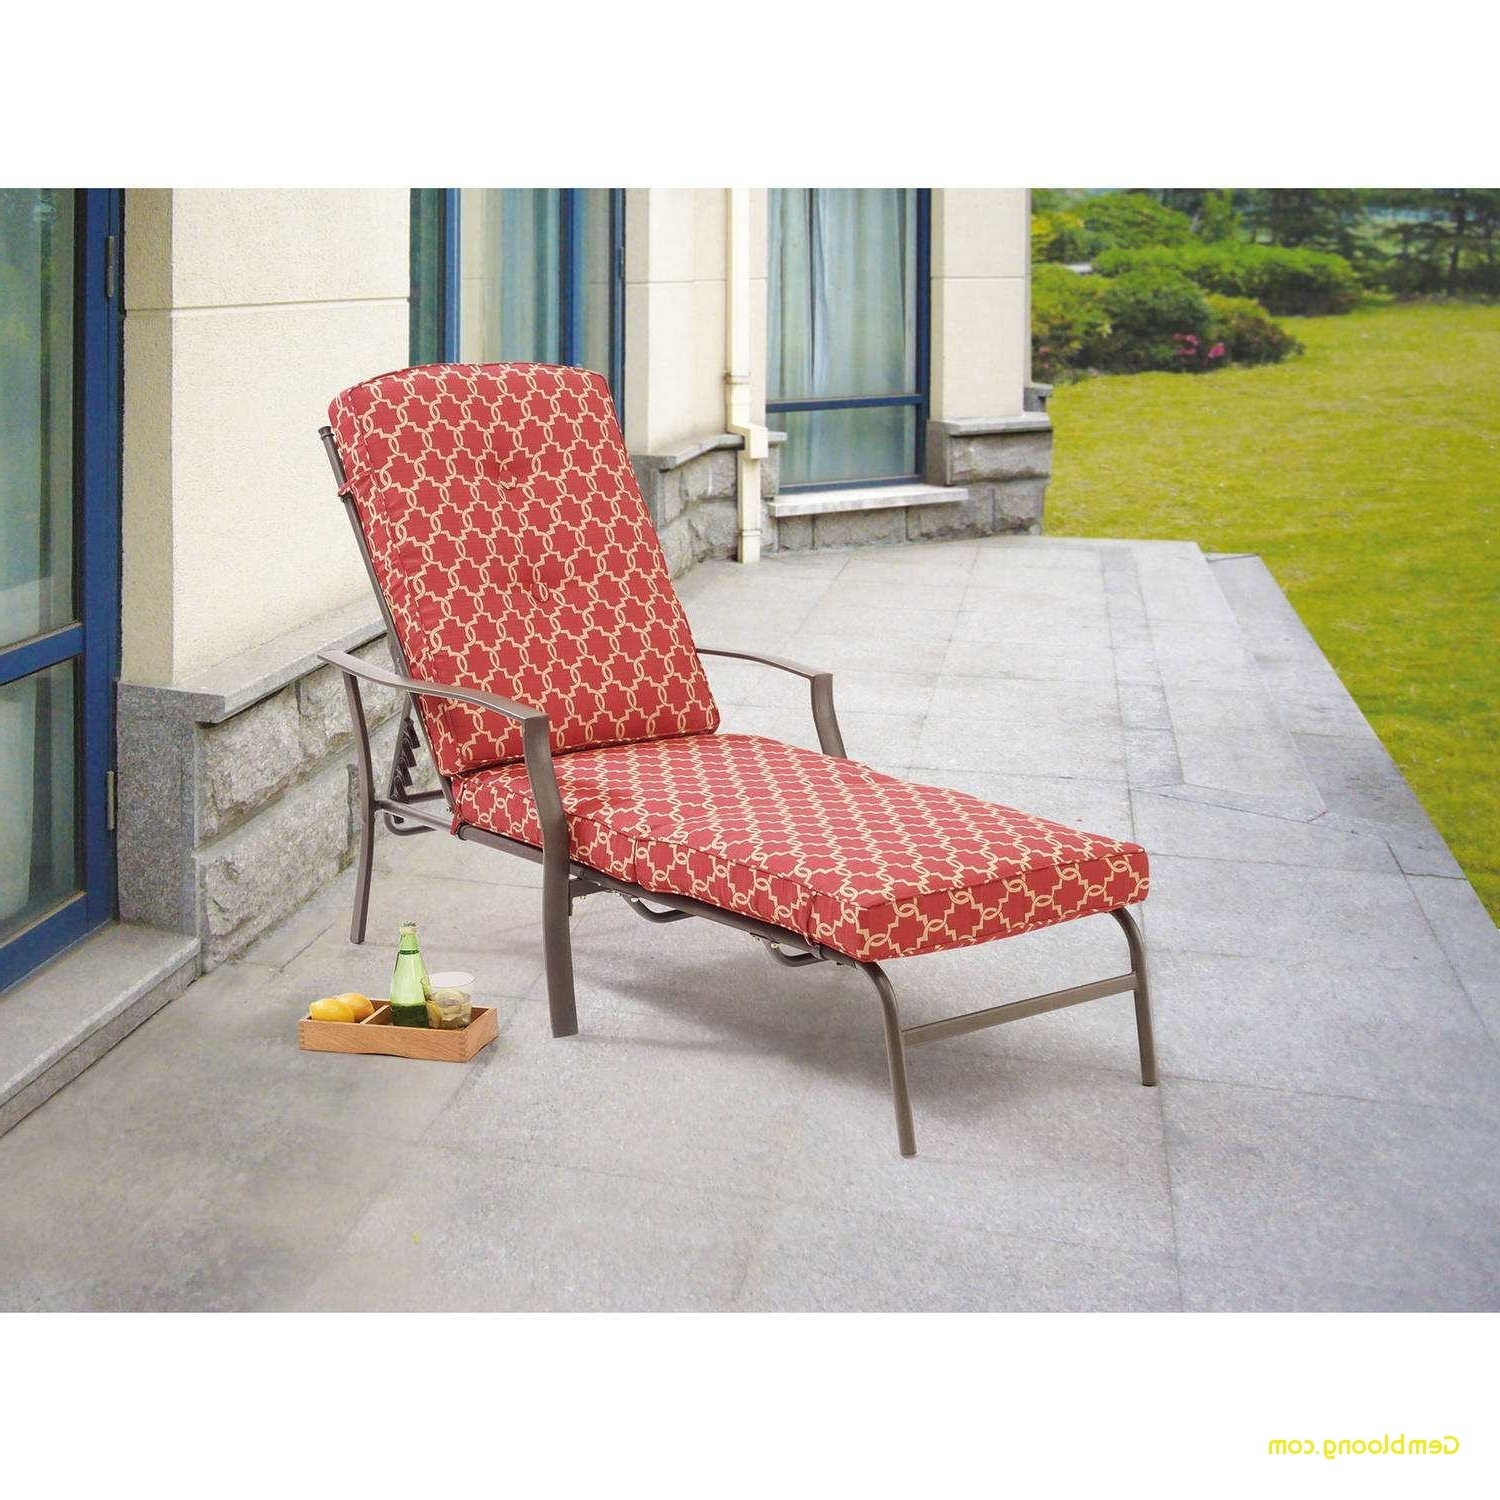 Latest Chair Cheap Outdoor Lounge Chairs Walmart Within Patio Chaise For Walmart Chaise Lounge Chairs (View 5 of 15)